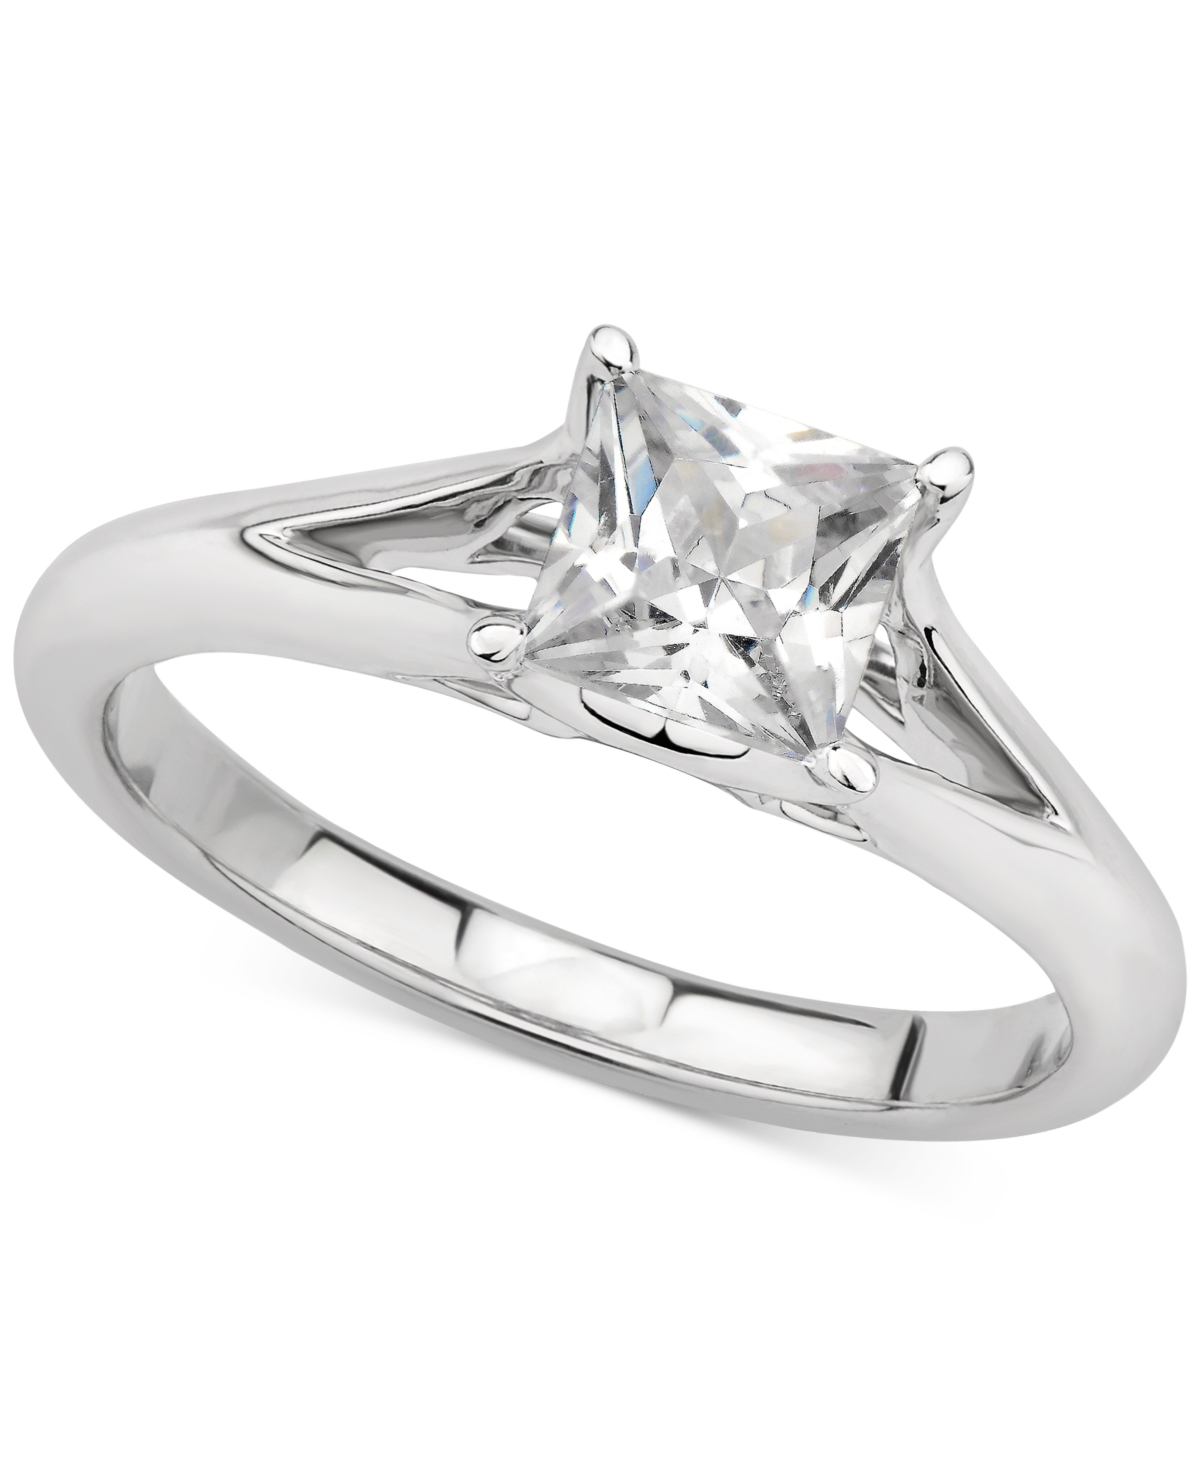 Gia Certified Diamond Princess Solitaire Engagement Ring (1 ct. t.w.) in 14k White Gold